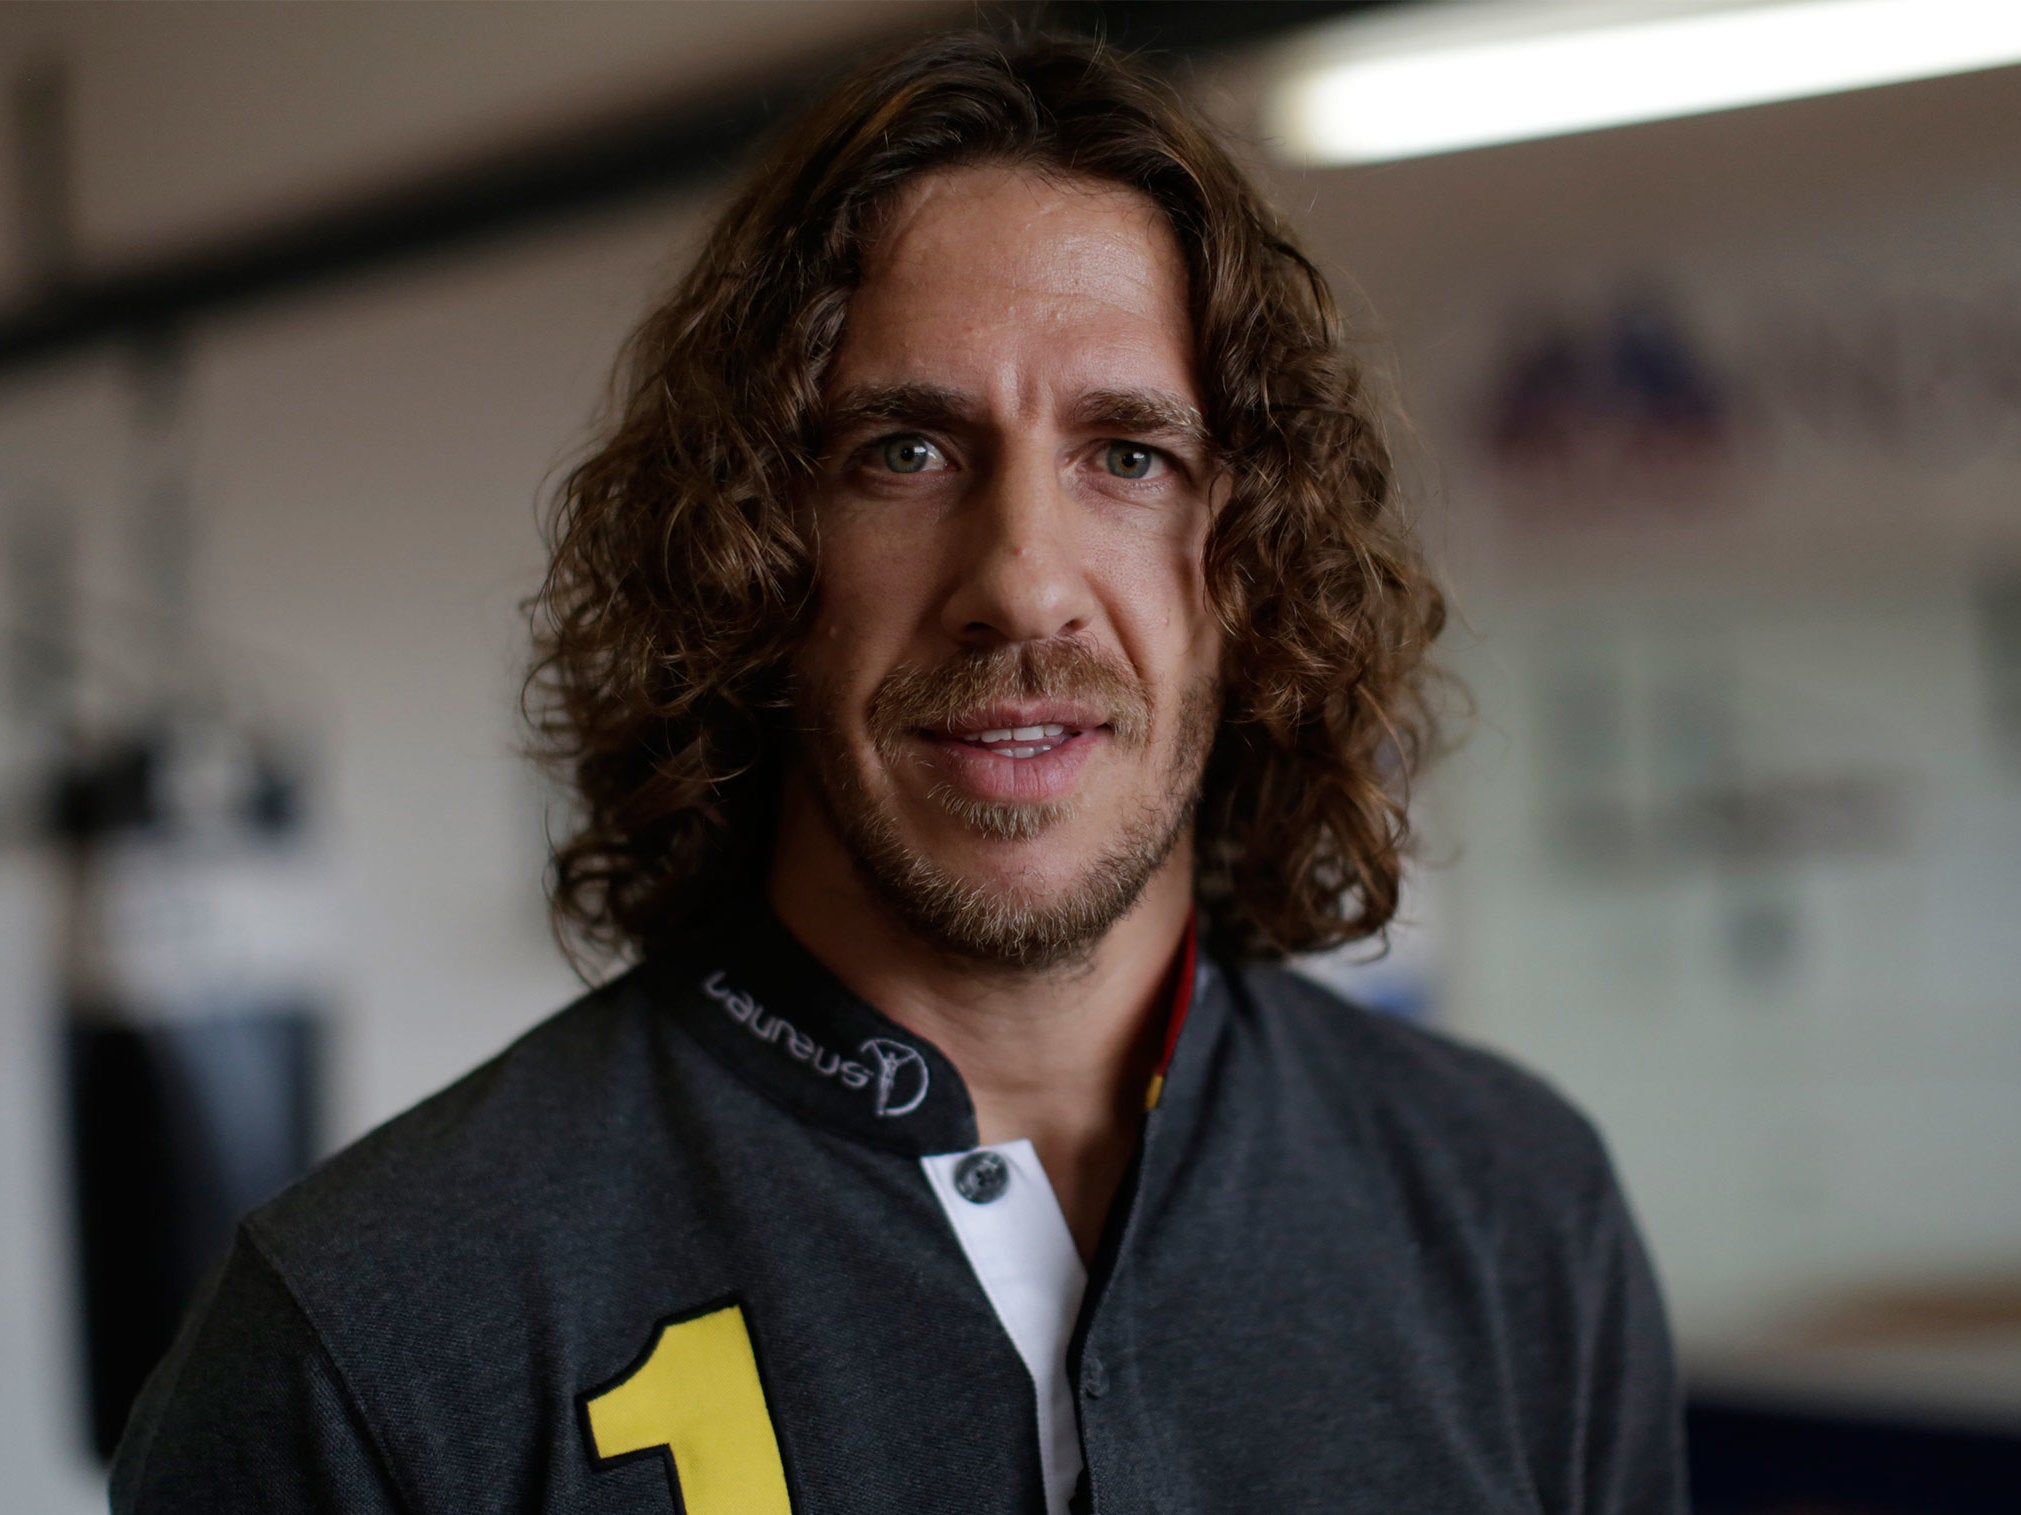 Carles Puyol interview: On Virgil van Dijk, the Barcelona brotherhood, and why he rejected a job at the Nou Camp